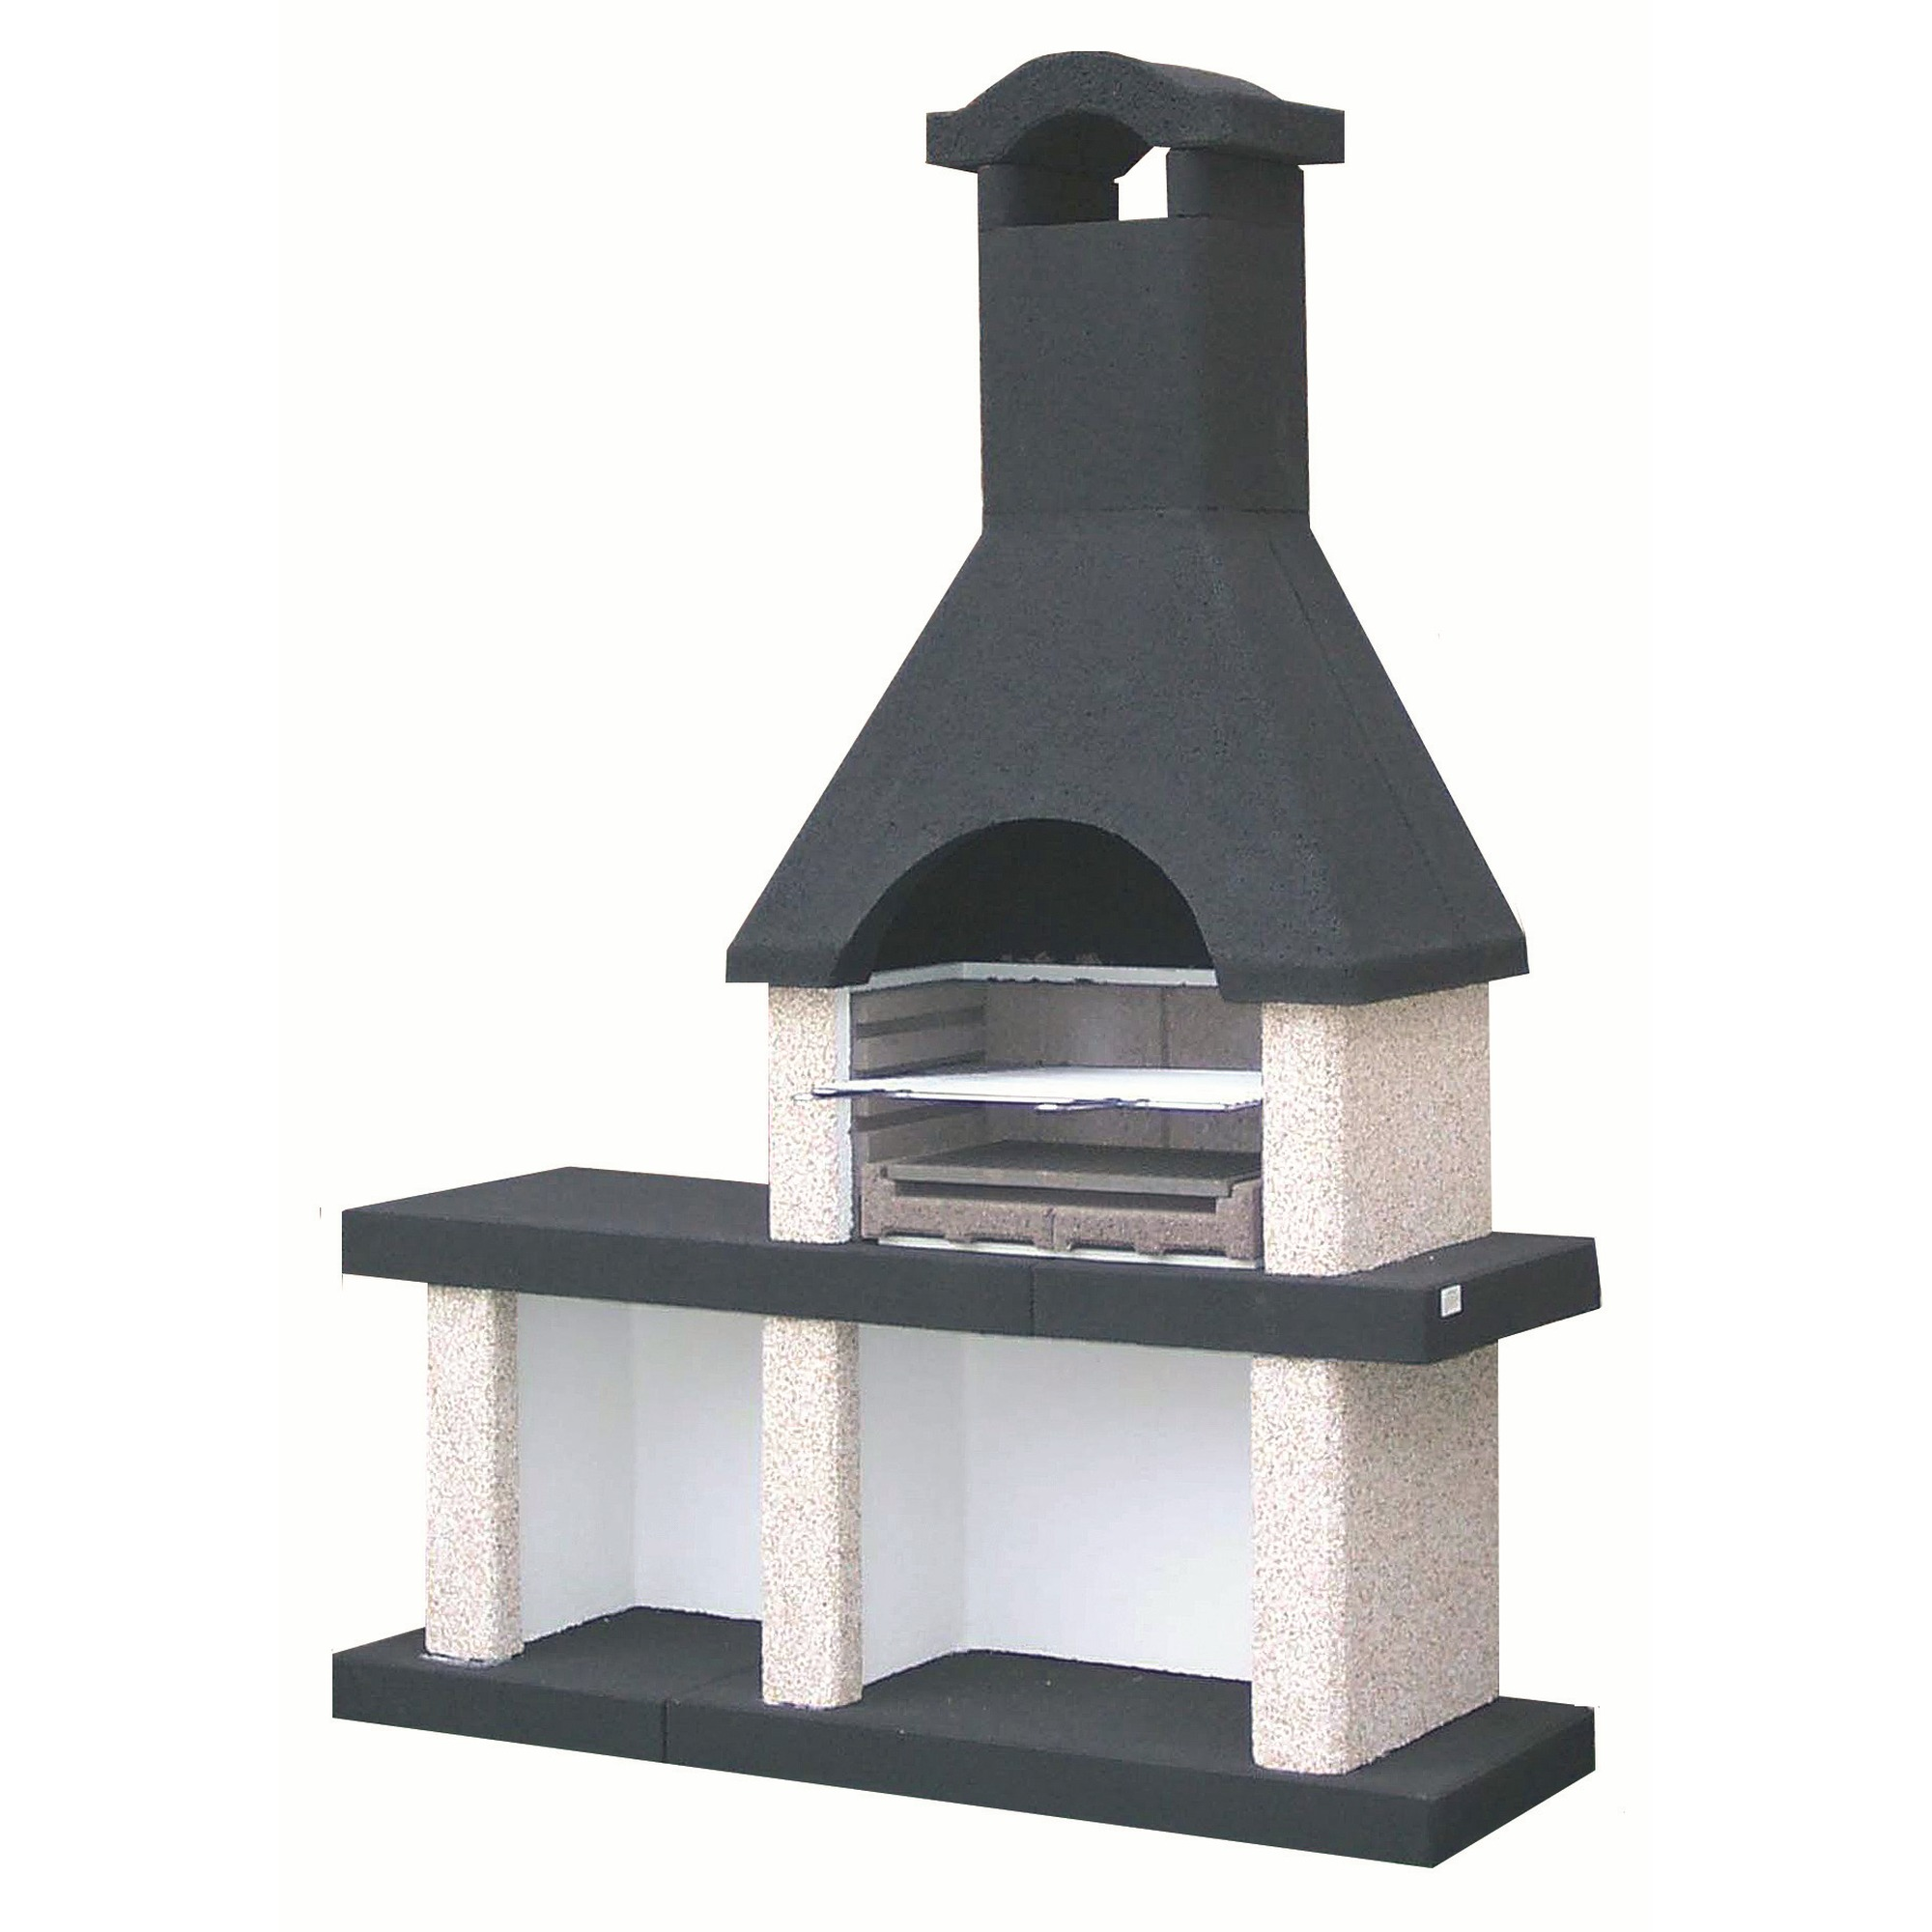 barbecue westerland beton 150x50 cm barbecues barbecue. Black Bedroom Furniture Sets. Home Design Ideas